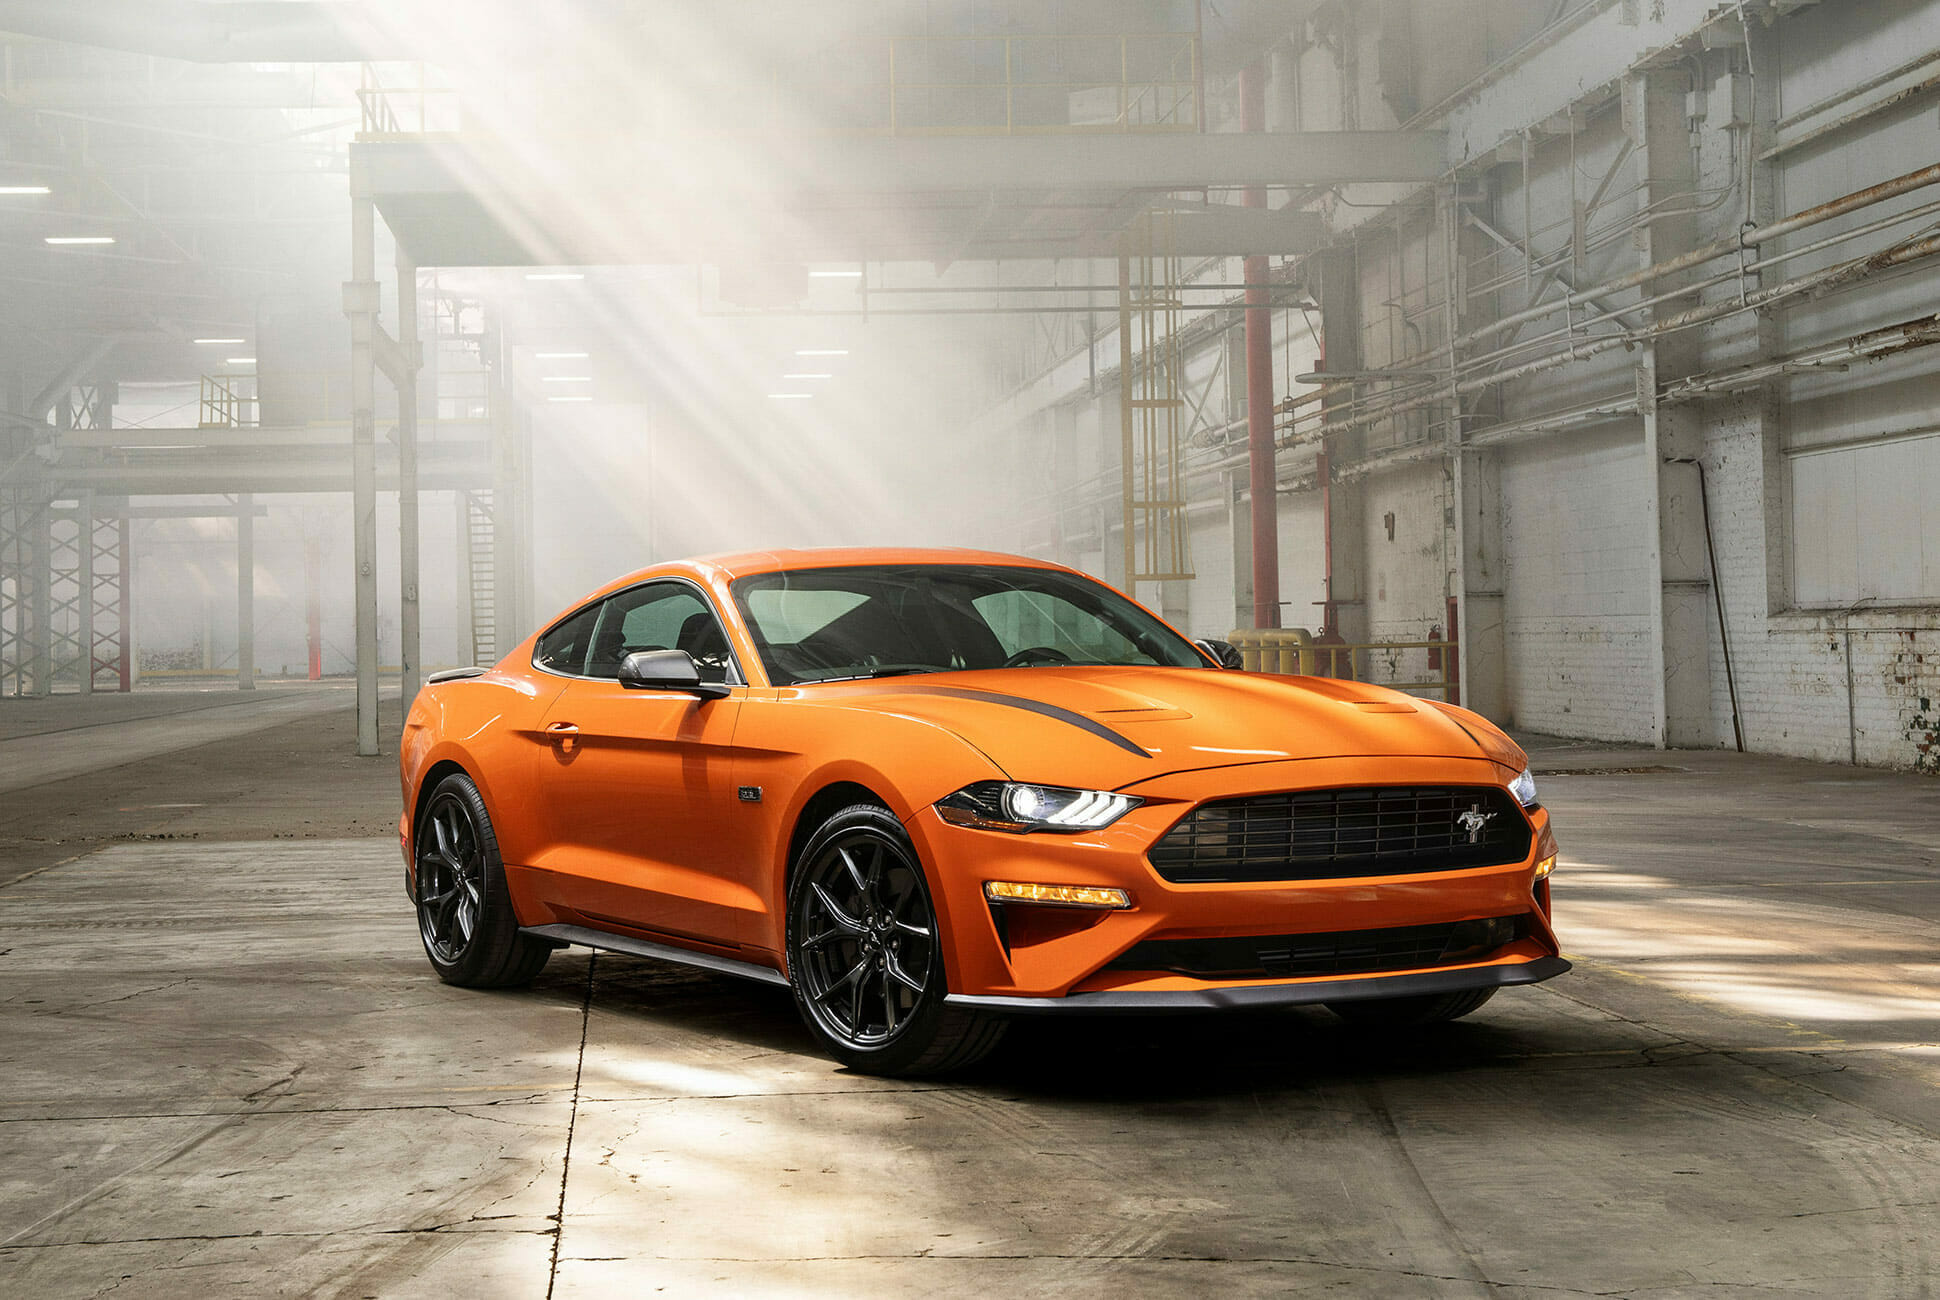 55 New Ford Mustang 2020 Performance and New Engine for Ford Mustang 2020